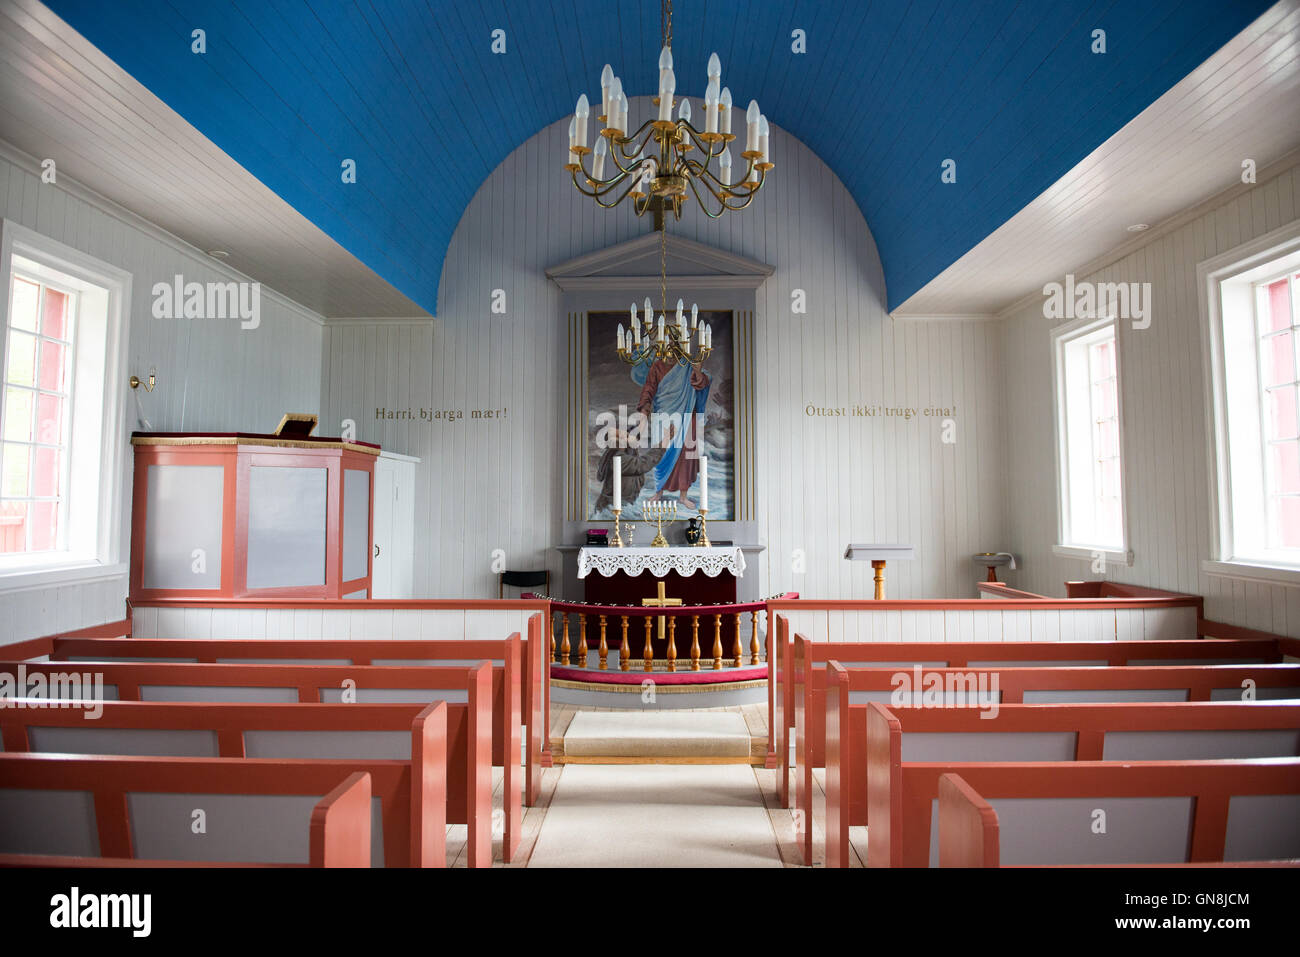 Inside the church of Arnafjordur on the Faroe Islands with benches and altar - Stock Image